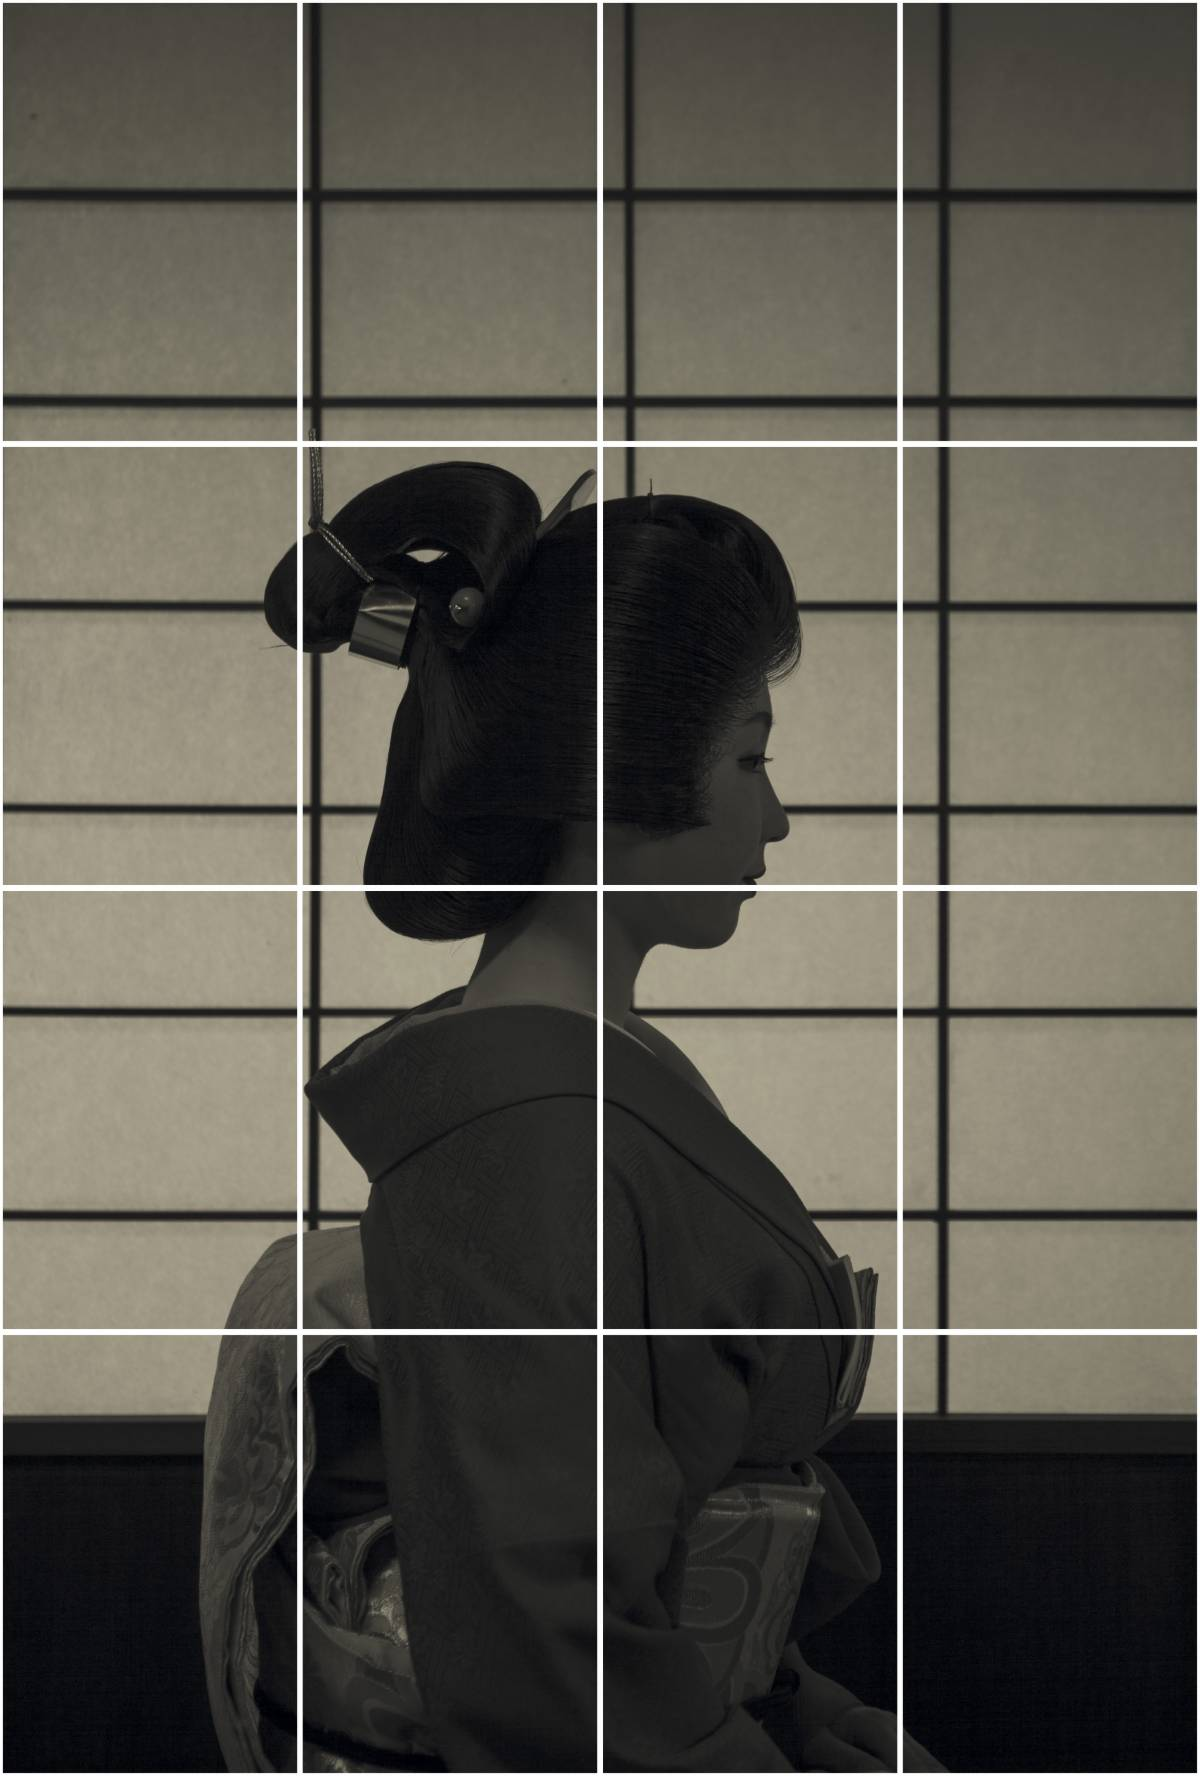 Asian Civilisations Museum extends Life in Edo | Russel Wong in Kyoto exhibition, with updates to its rotation schedule